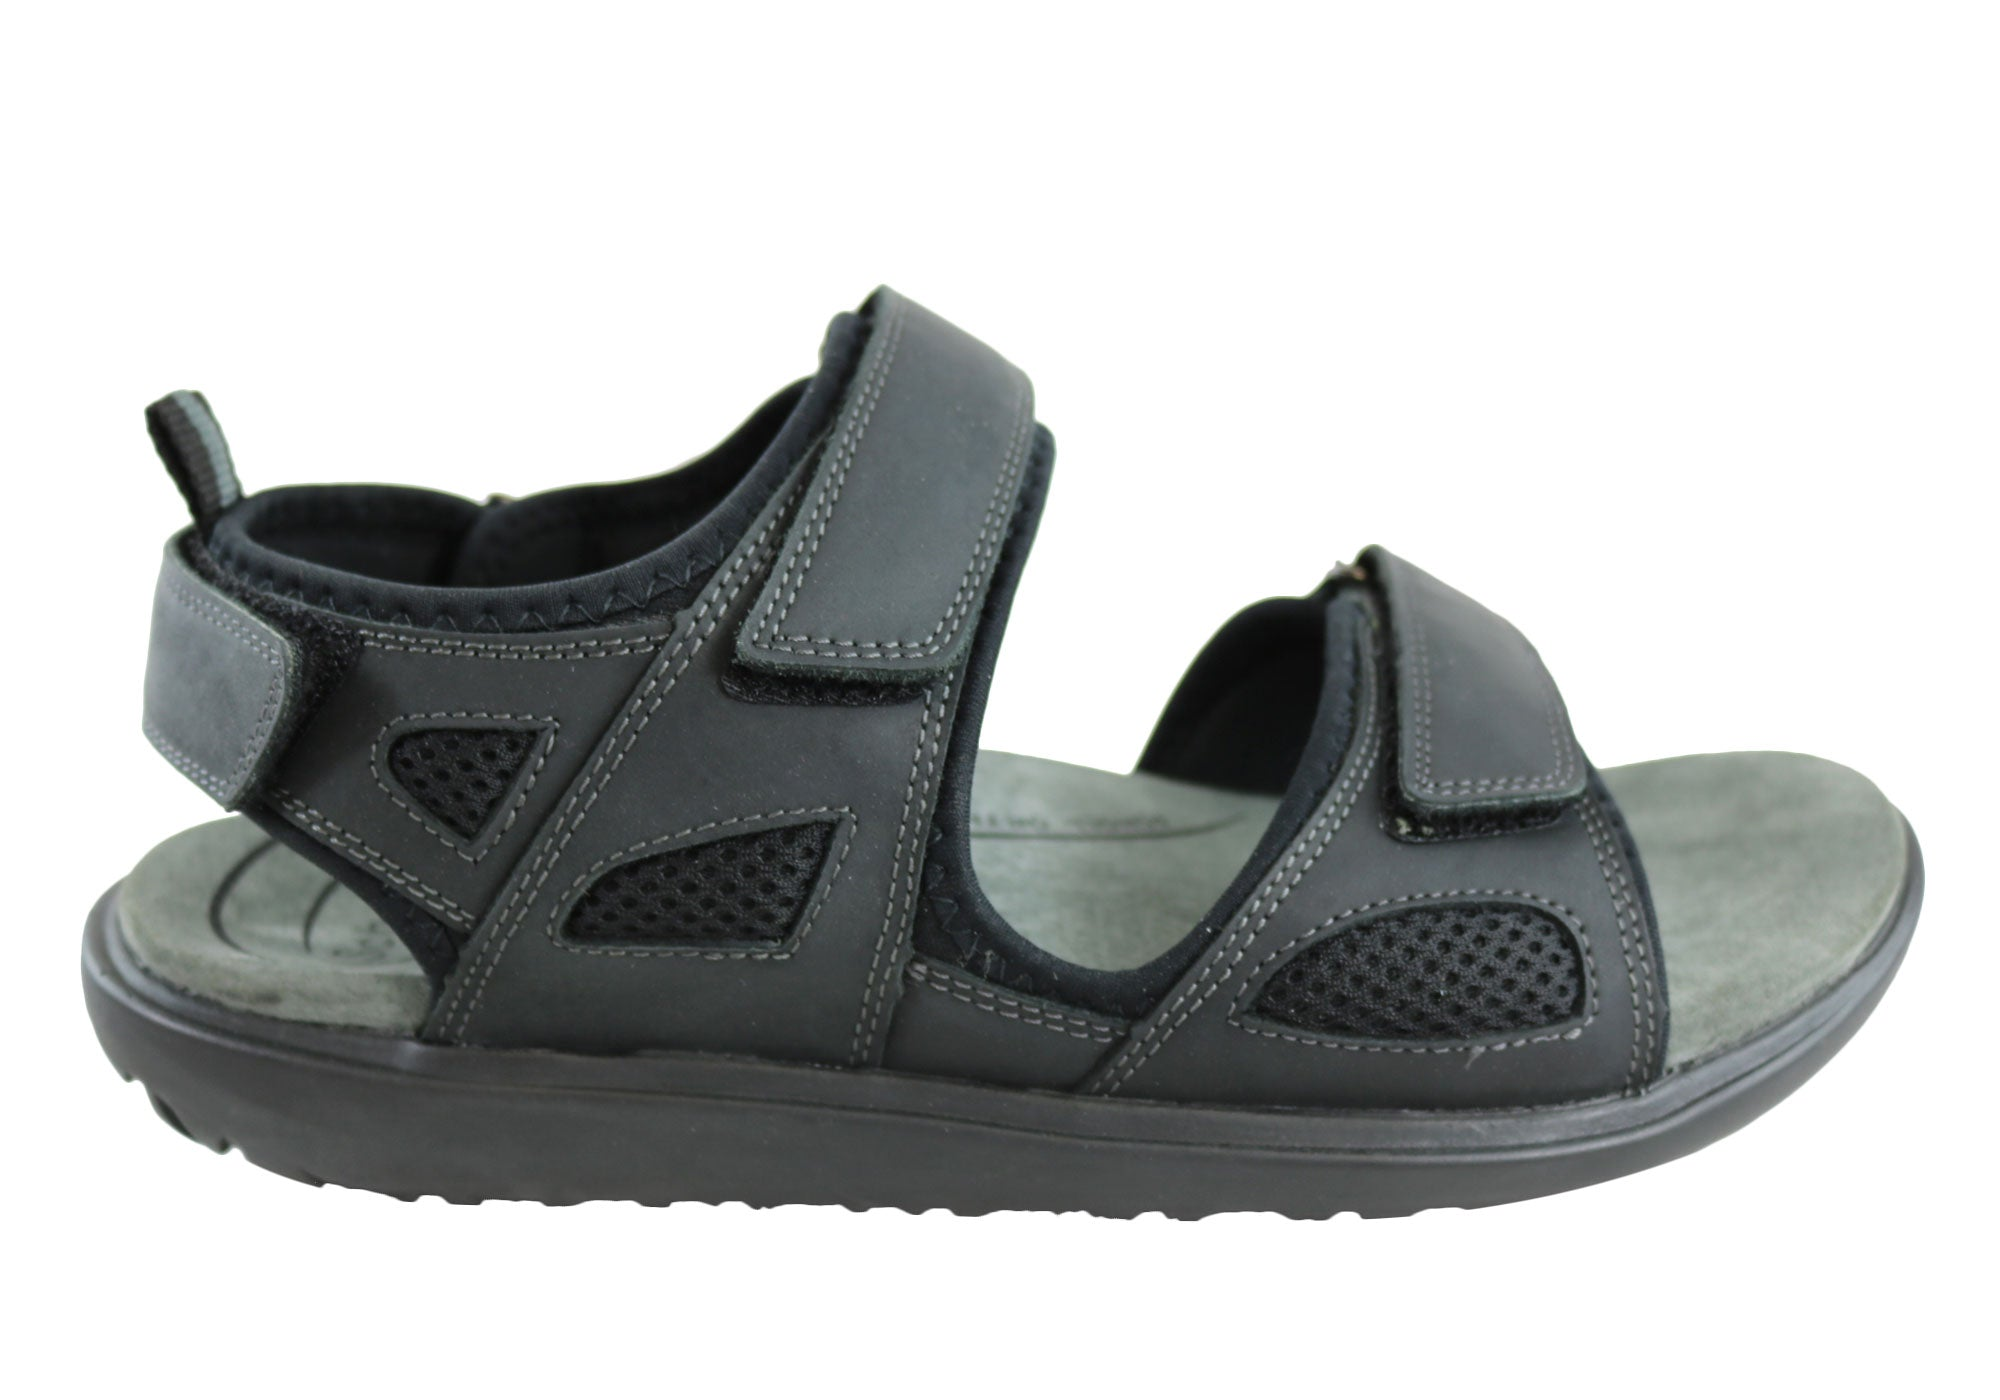 f499ff71bd8f Scholl Orthaheel Pioneer Mens Comfortable Supportive Sandals